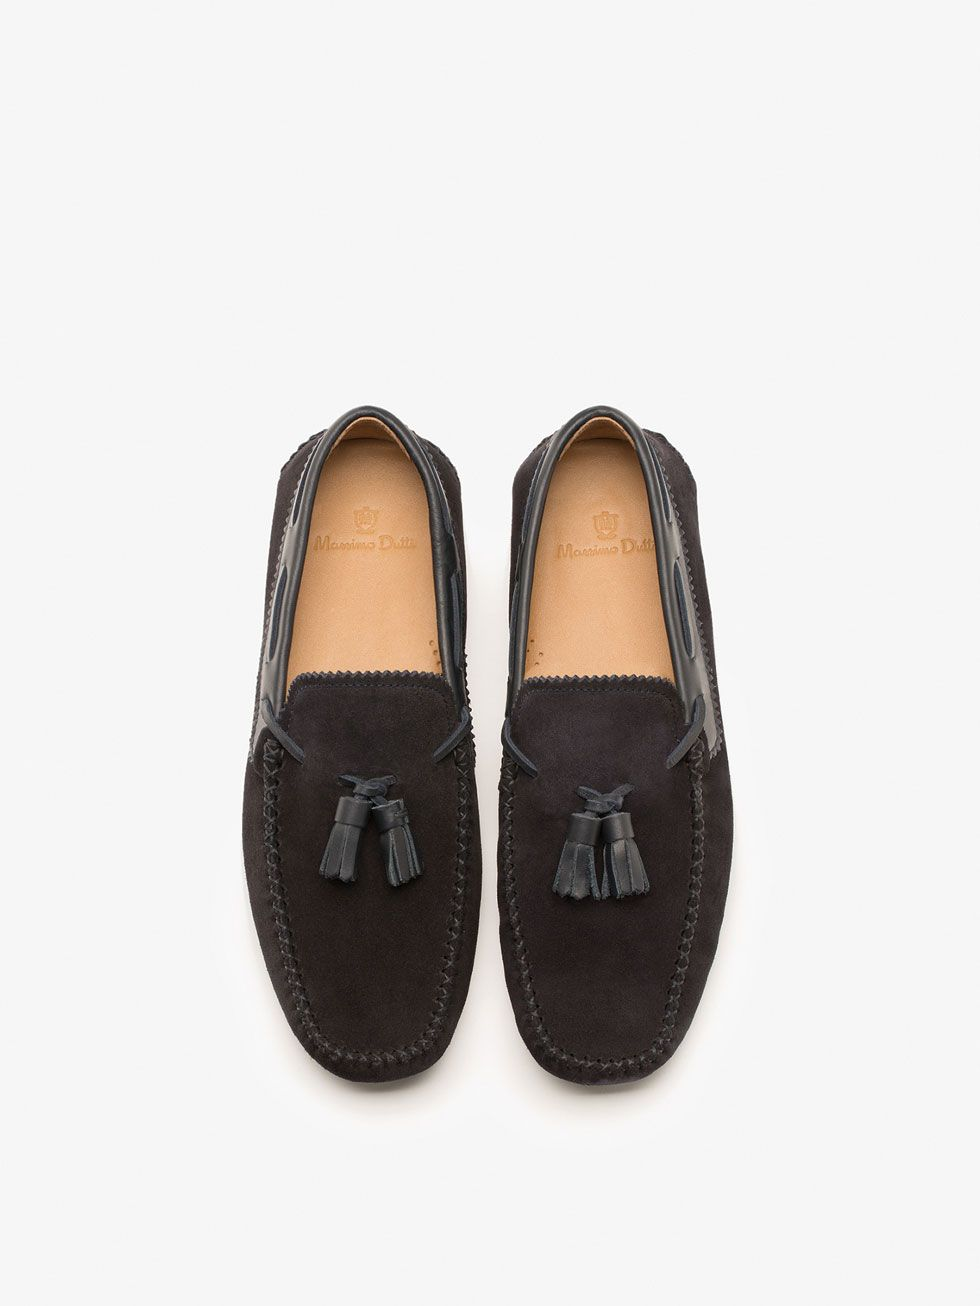 cd2aebdbb93 Tassel Loafers - Suede - View all - Shoes - MEN - Massimo Dutti ...